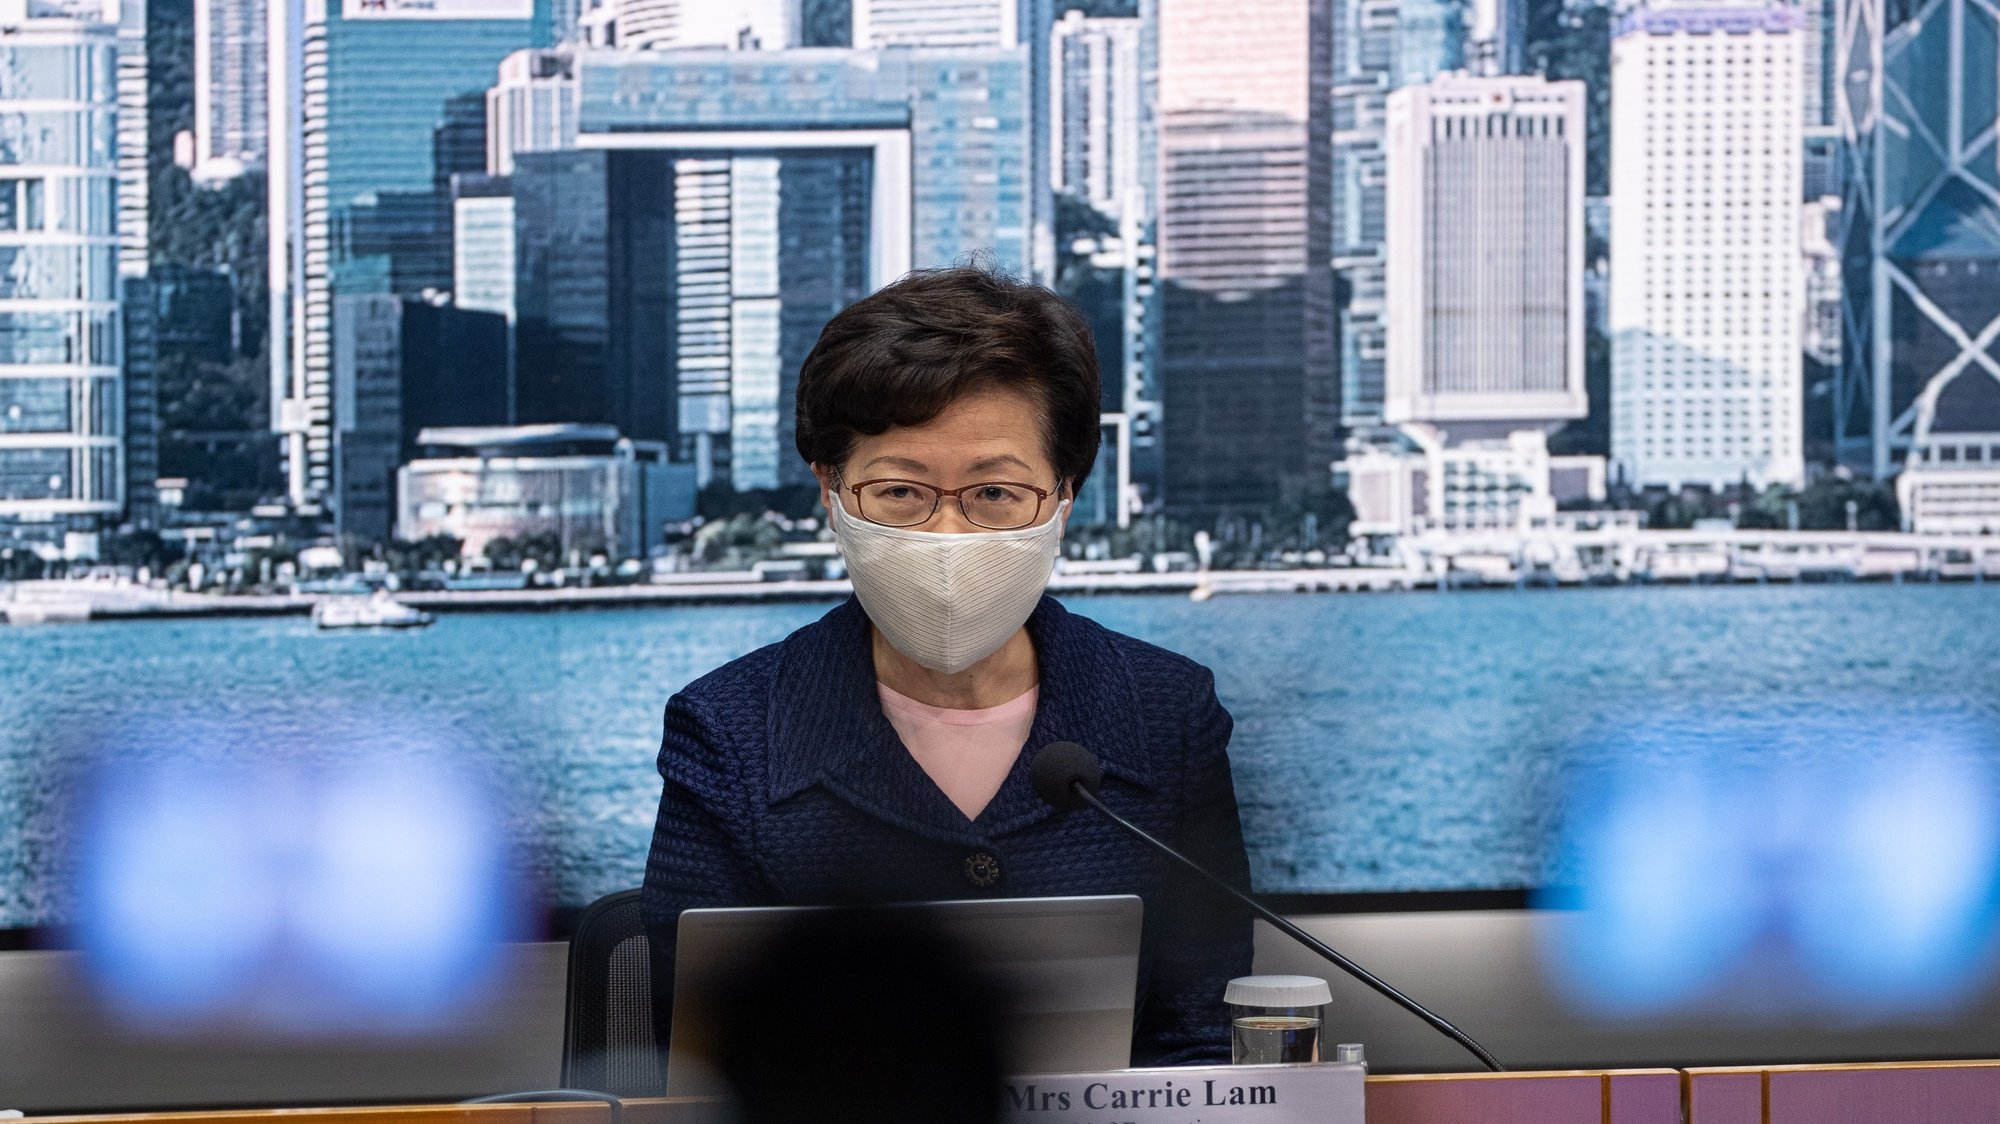 epa08576520 Hong Kong Chief Executive Carrie Lam speaks during a press conference in Hong Kong, China, 31 July 2020. Lam announced the postponement of the Legislative Council elections due on September 6, citing the worsening coronavirus Covid-19 situation in the city as the primary reason.  EPA/JEROME FAVRE